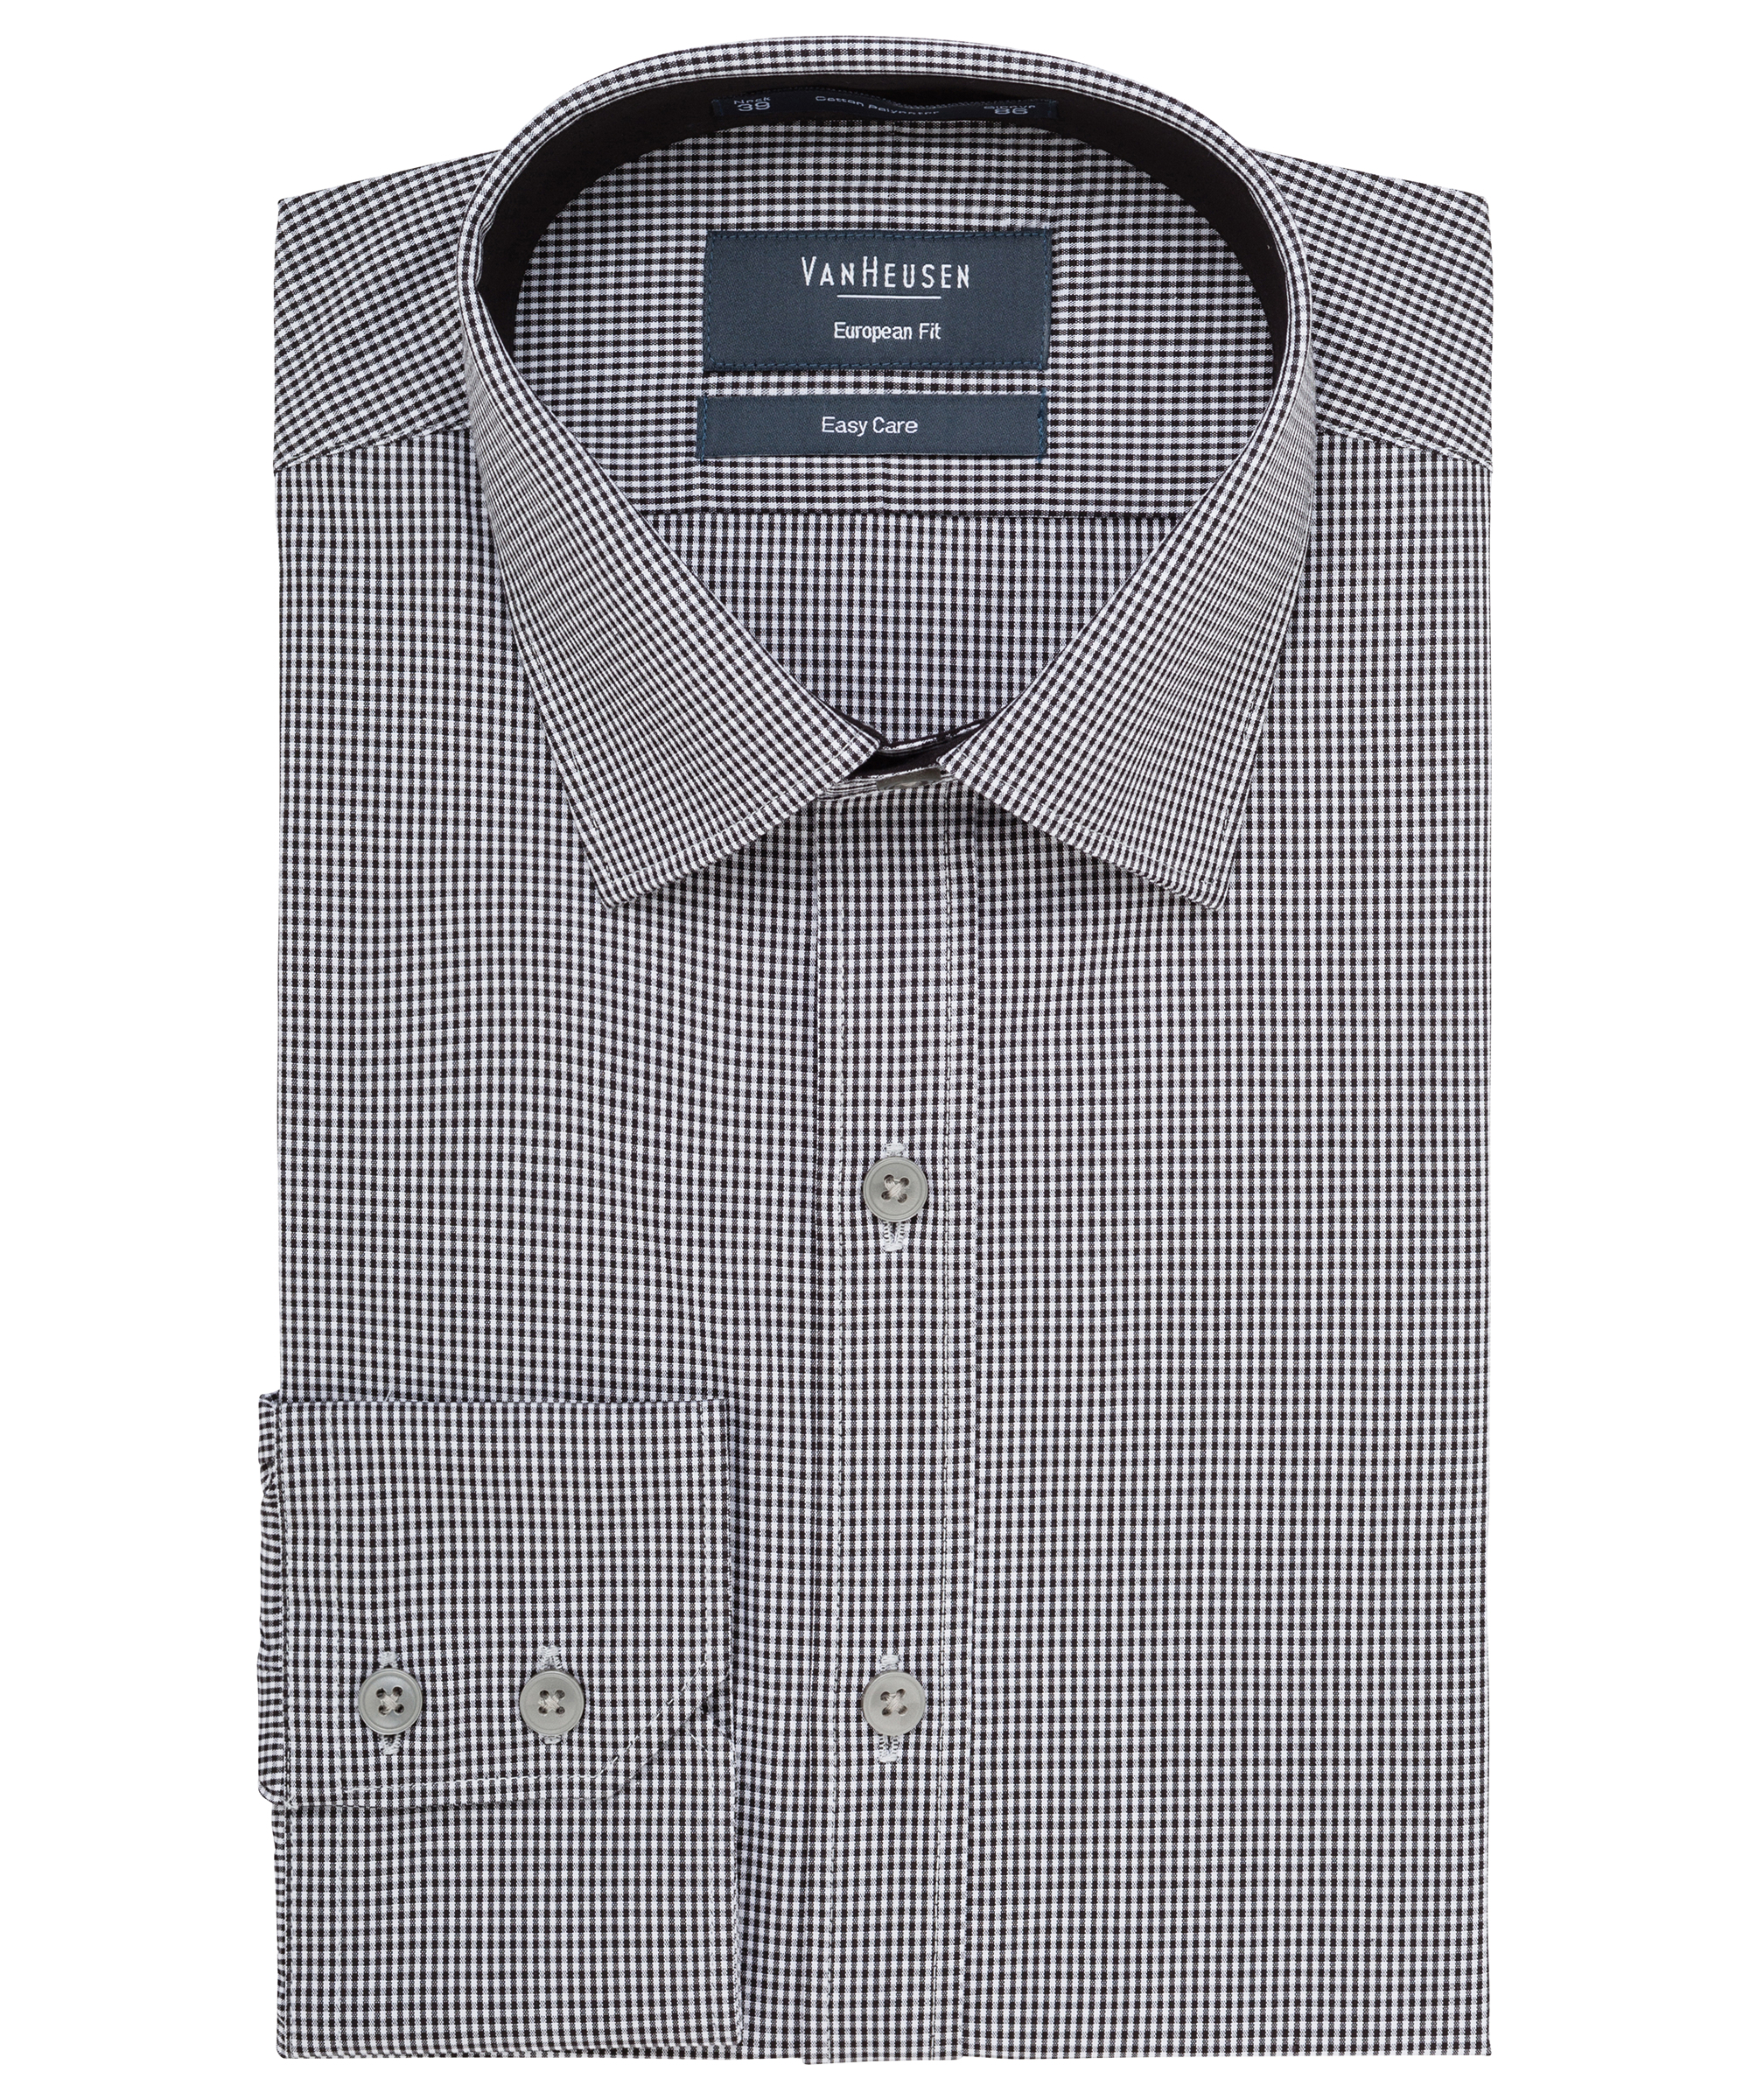 32c34f39d9e712 Van Heusen. Men's European Tailored Fit Shirt Cotton Polyester Yarn Dyed  Check Easy Care